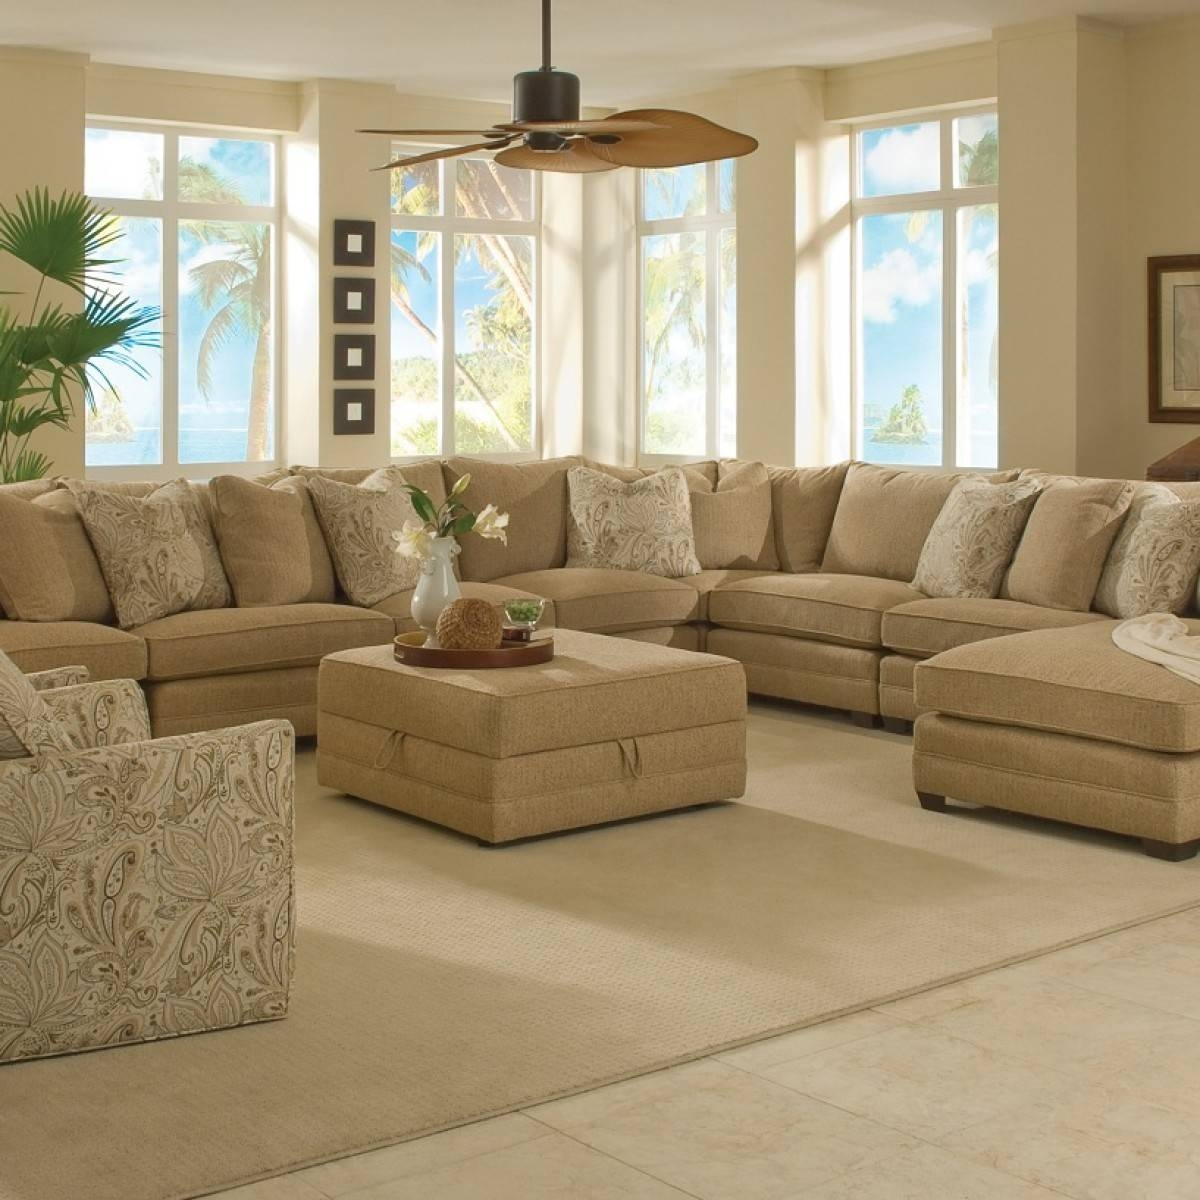 Furniture: Nice Extra Large Sectional Sofa For Large Living Room inside Extra Large Leather Sectional Sofas (Image 13 of 15)